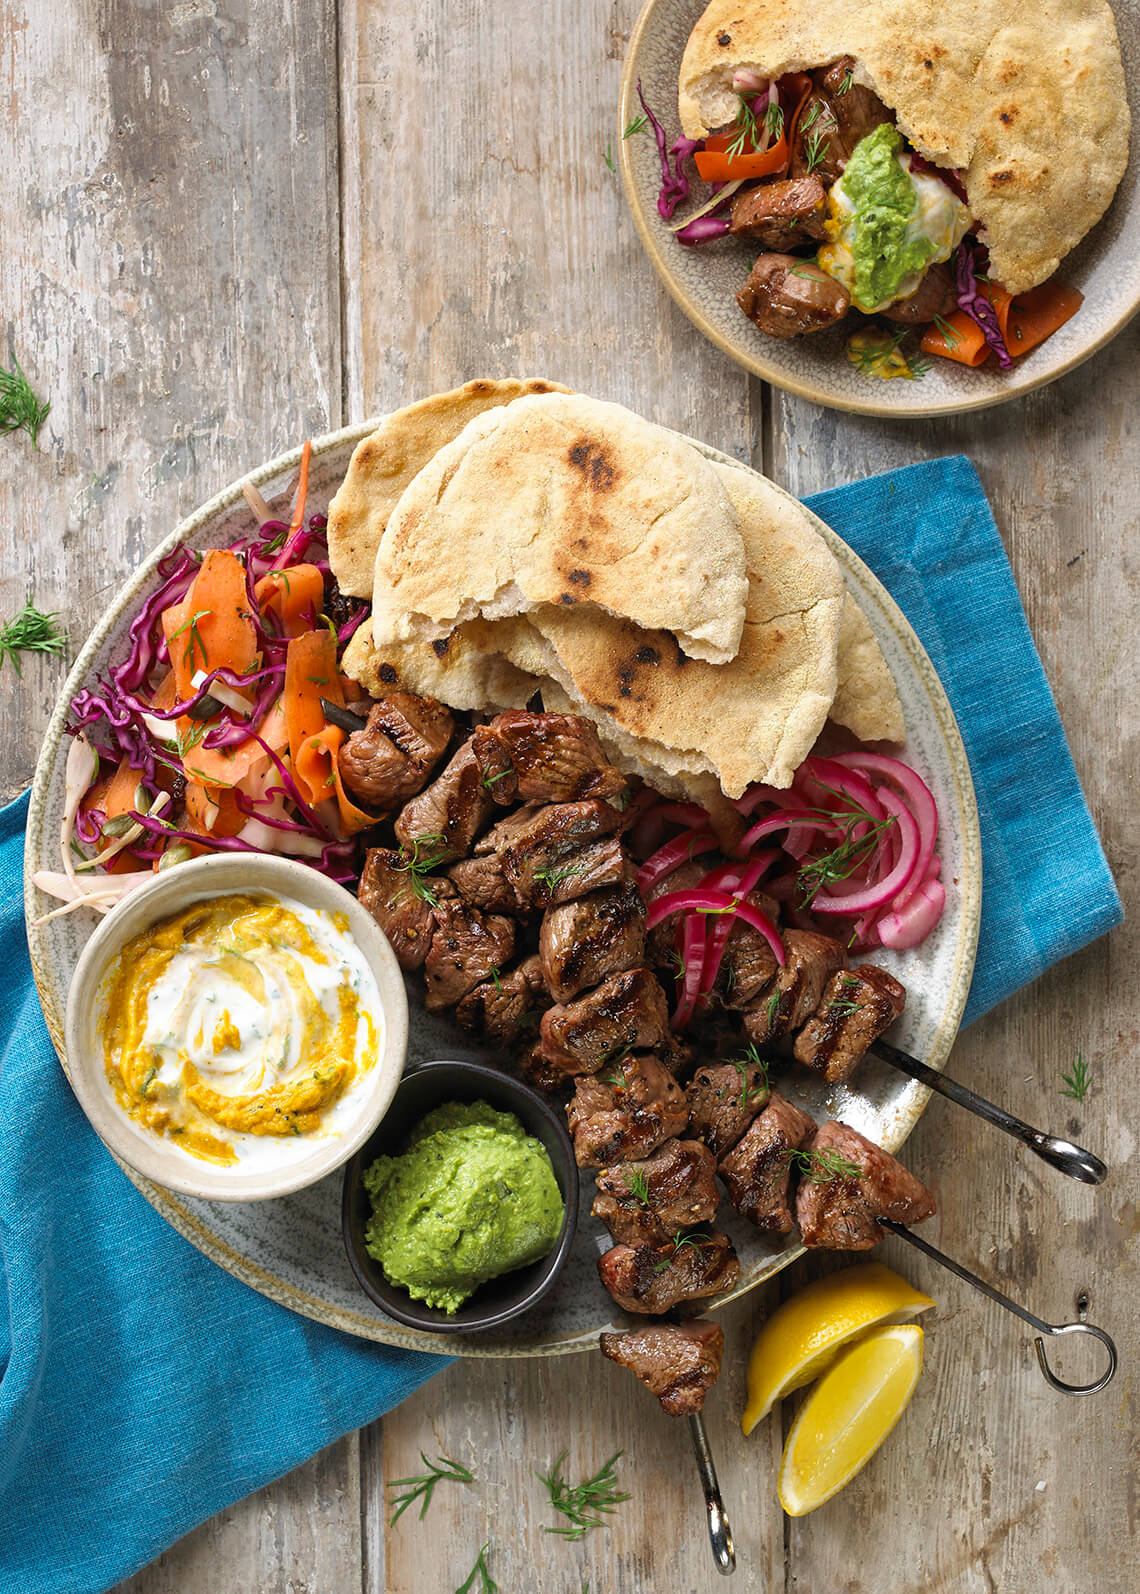 Lamb skewers with flatbreads.